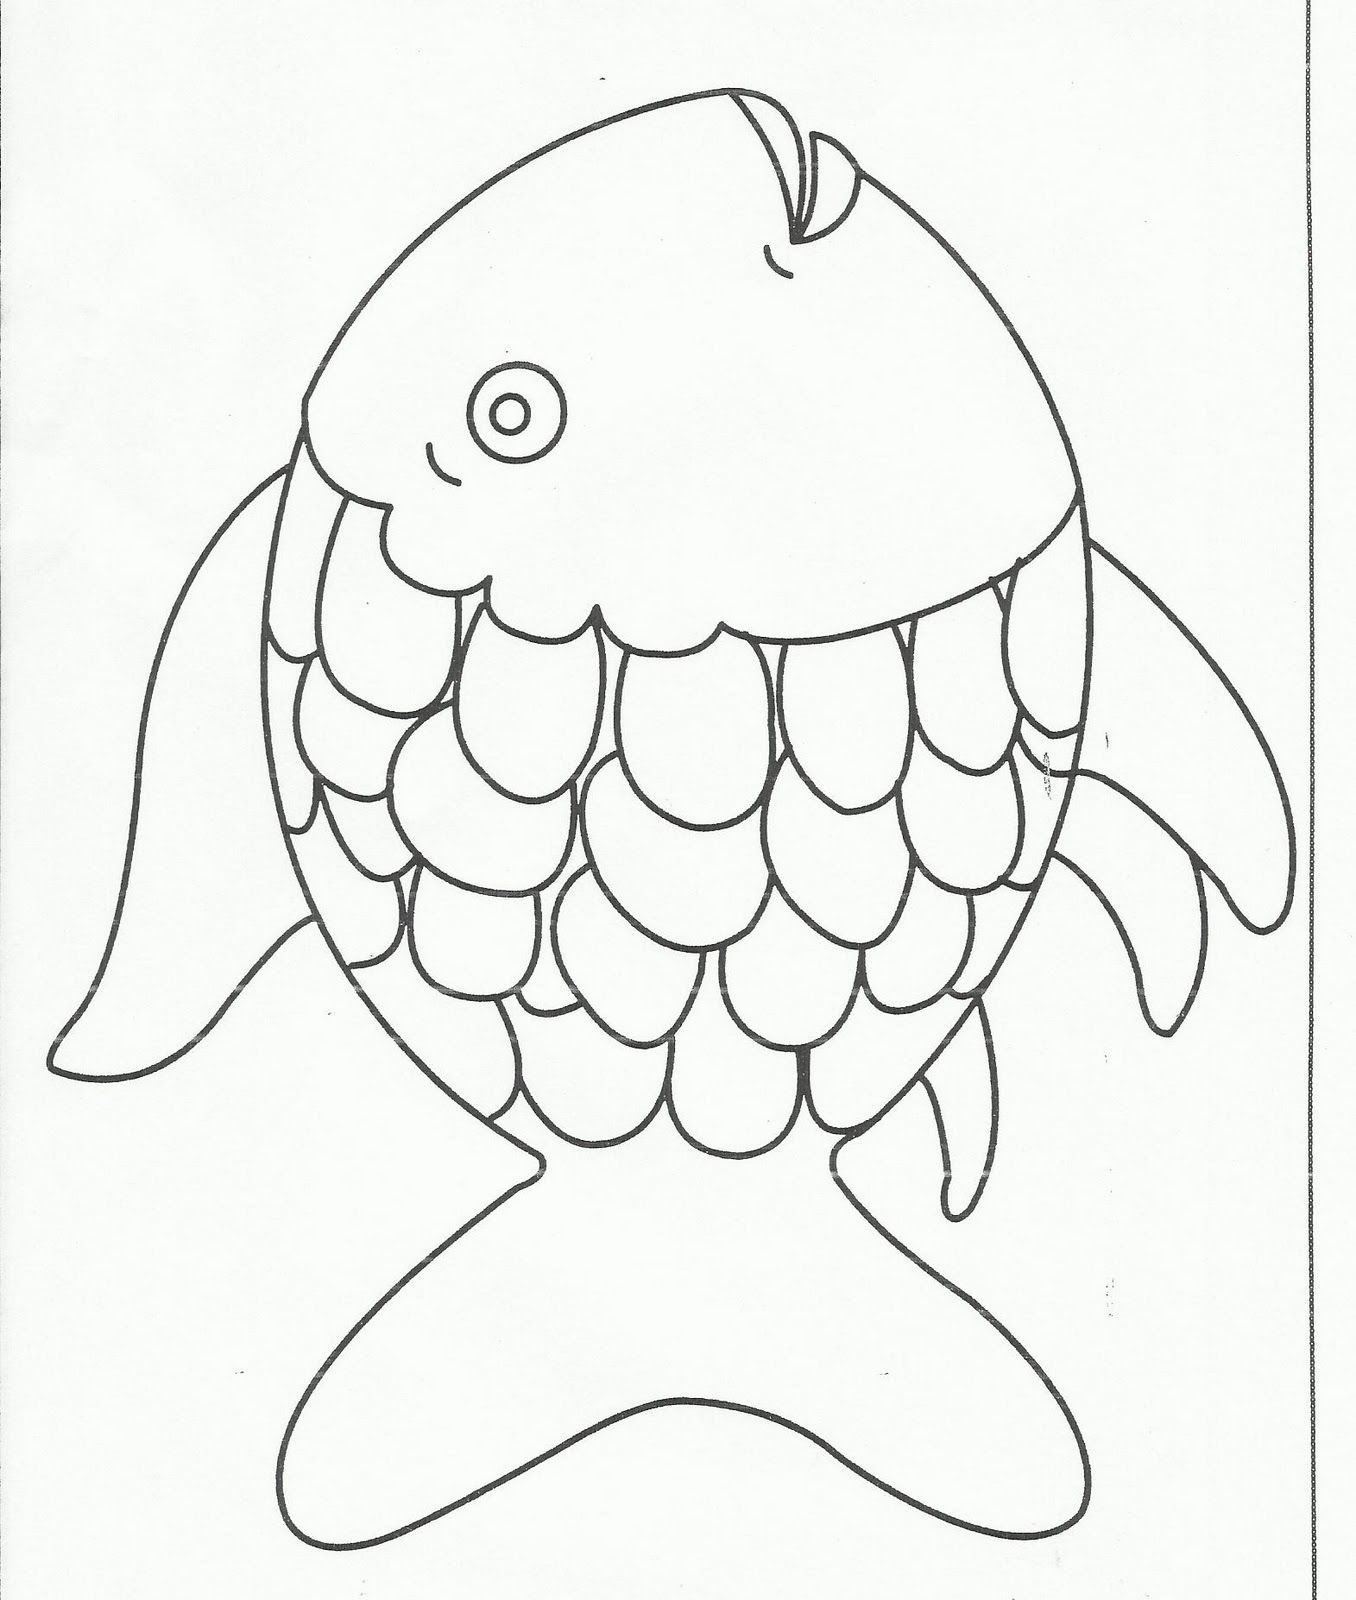 Printable coloring pages rainbow fish - Rainbow Fish Preschool Templates